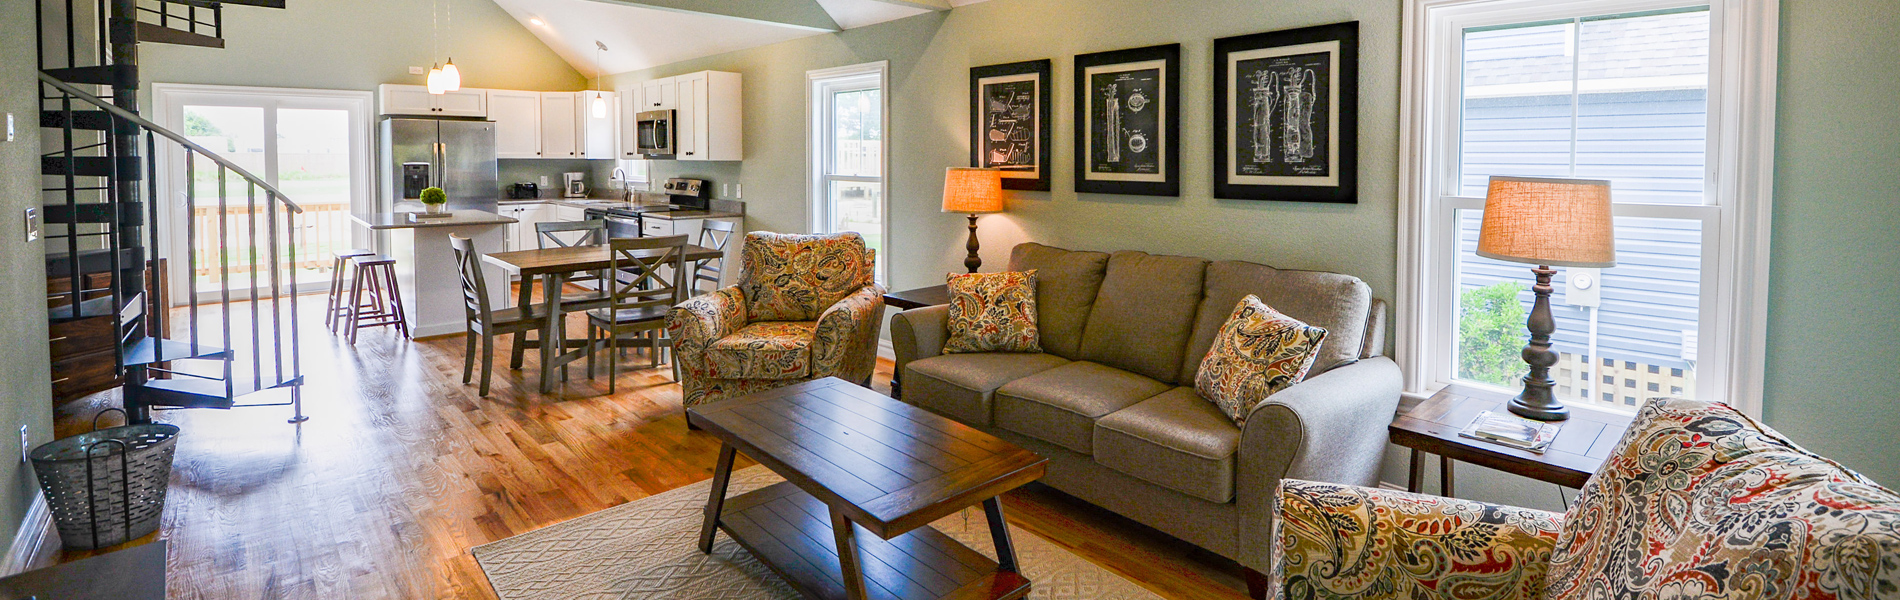 Outer Banks Rental - Cottages at Kilmarlic Golf Resort